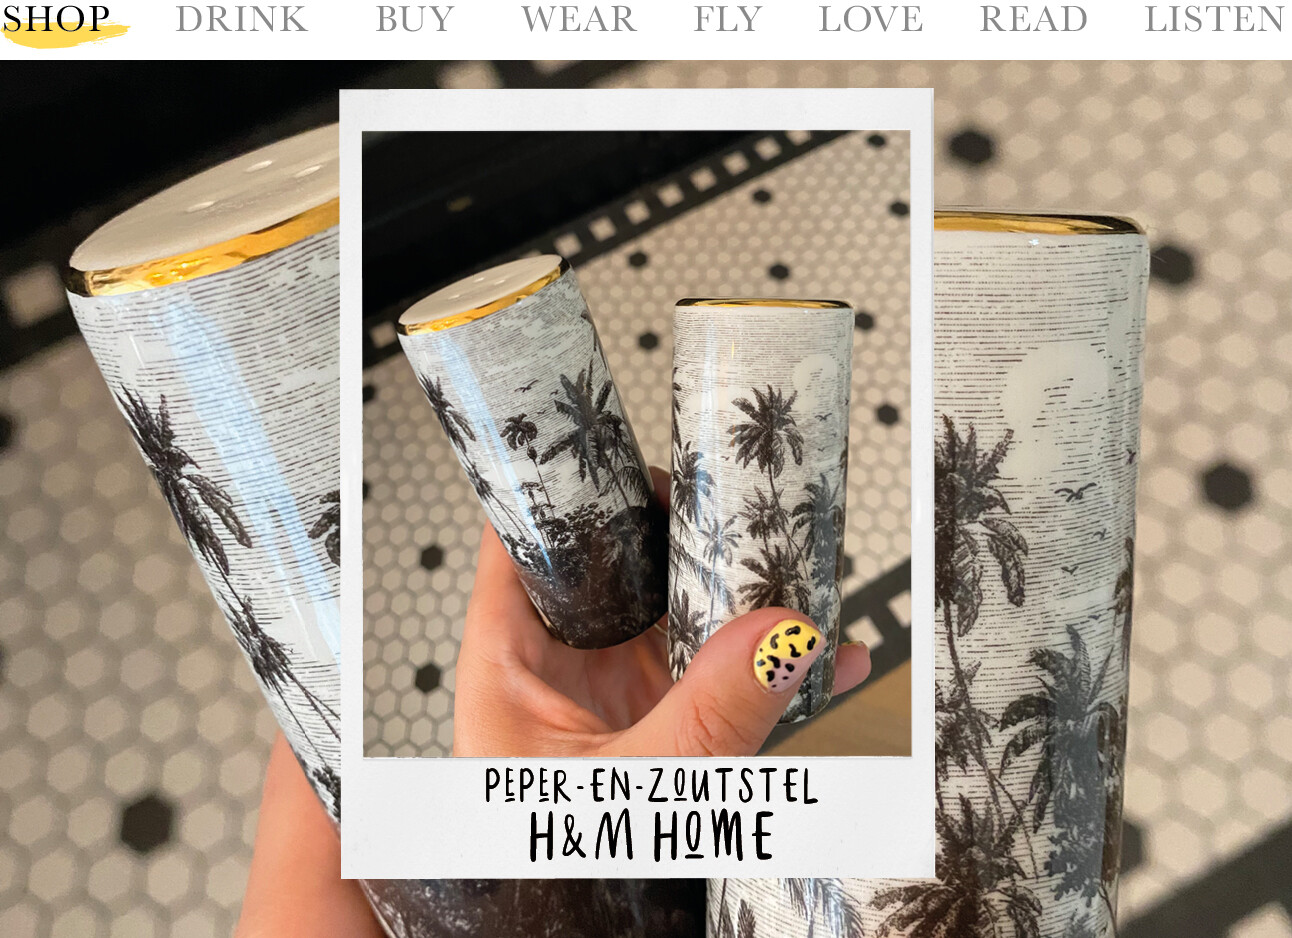 today we shop at H&M Home